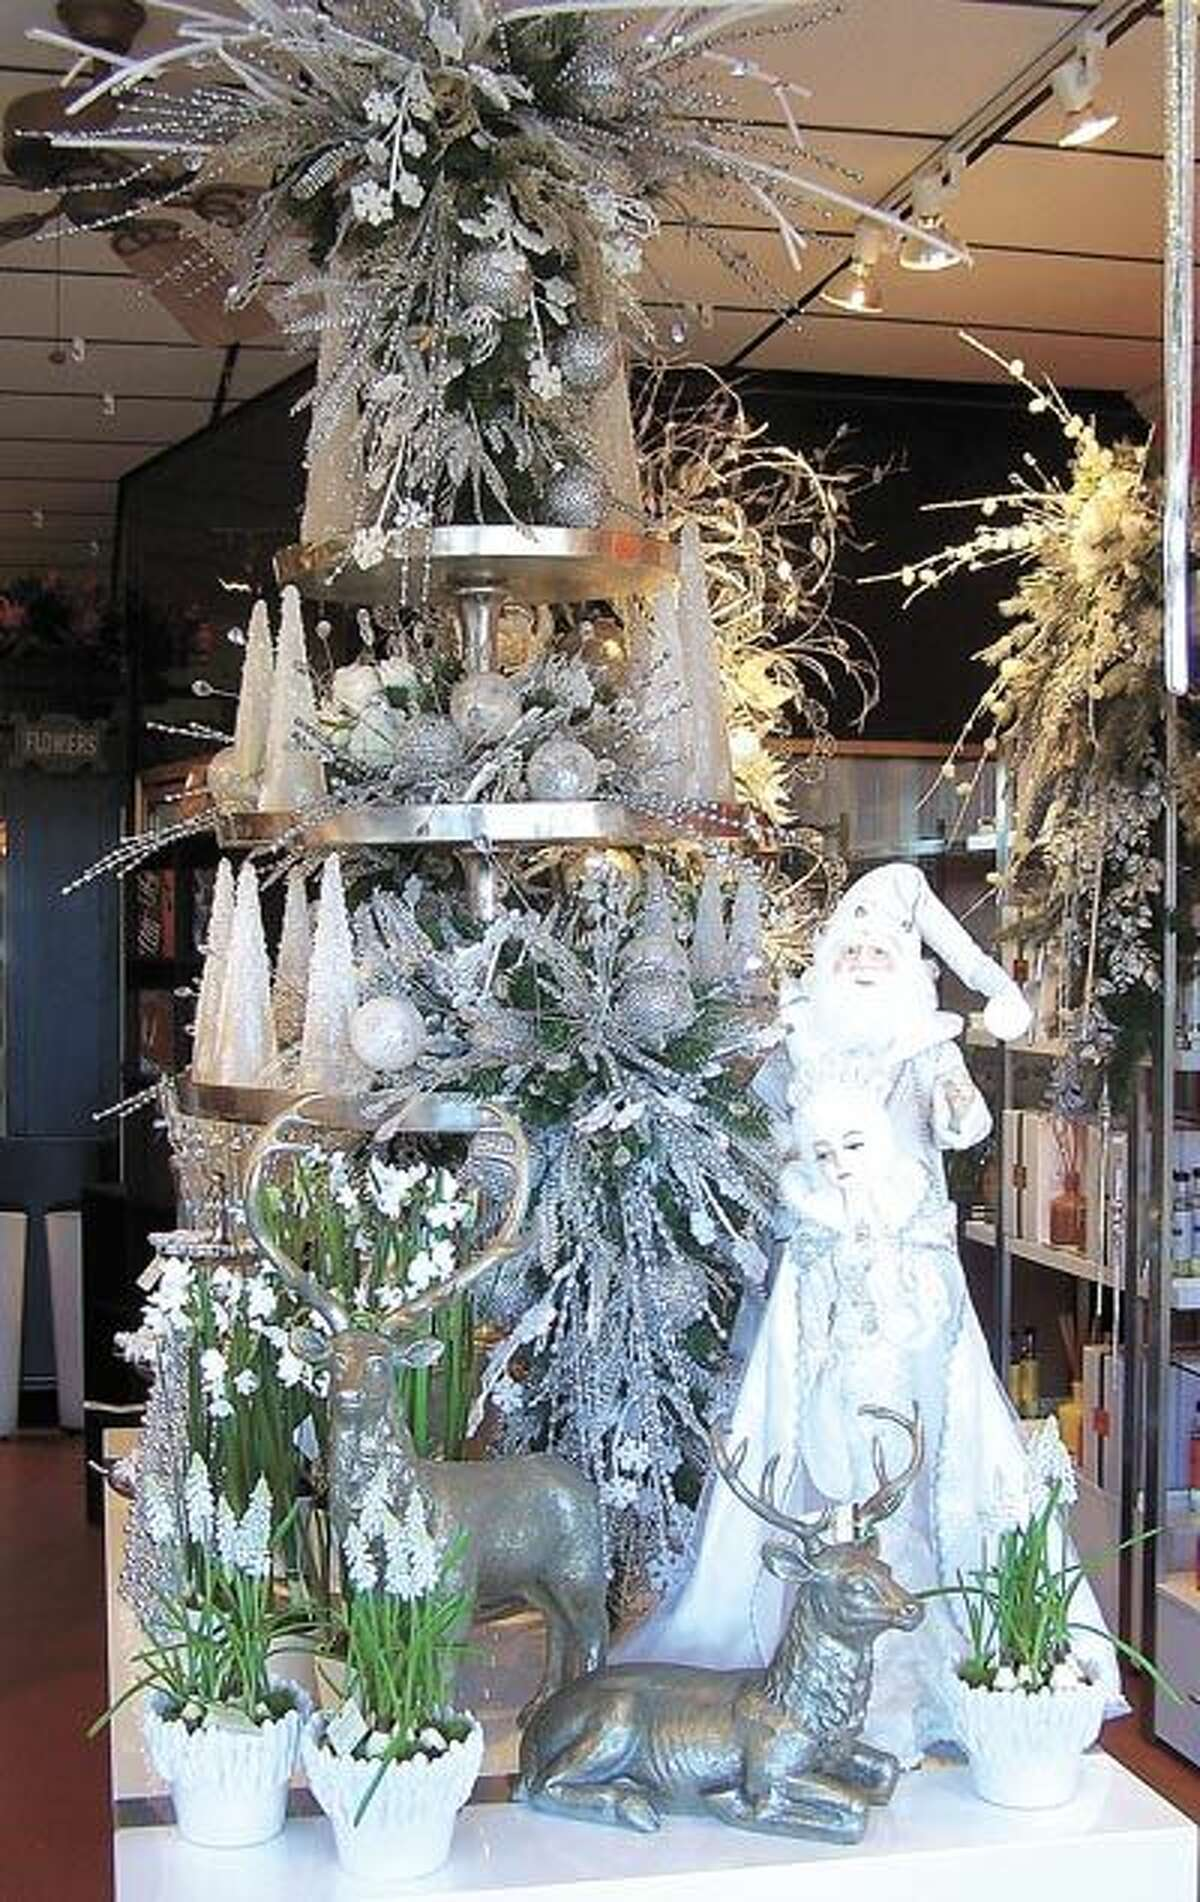 It's more than dreaming, you're really seeing a white Christmas at Flowerland. See their open house this Saturday October 24 from 10-4 and sign up for door prizes. All merchandise is available for sale!